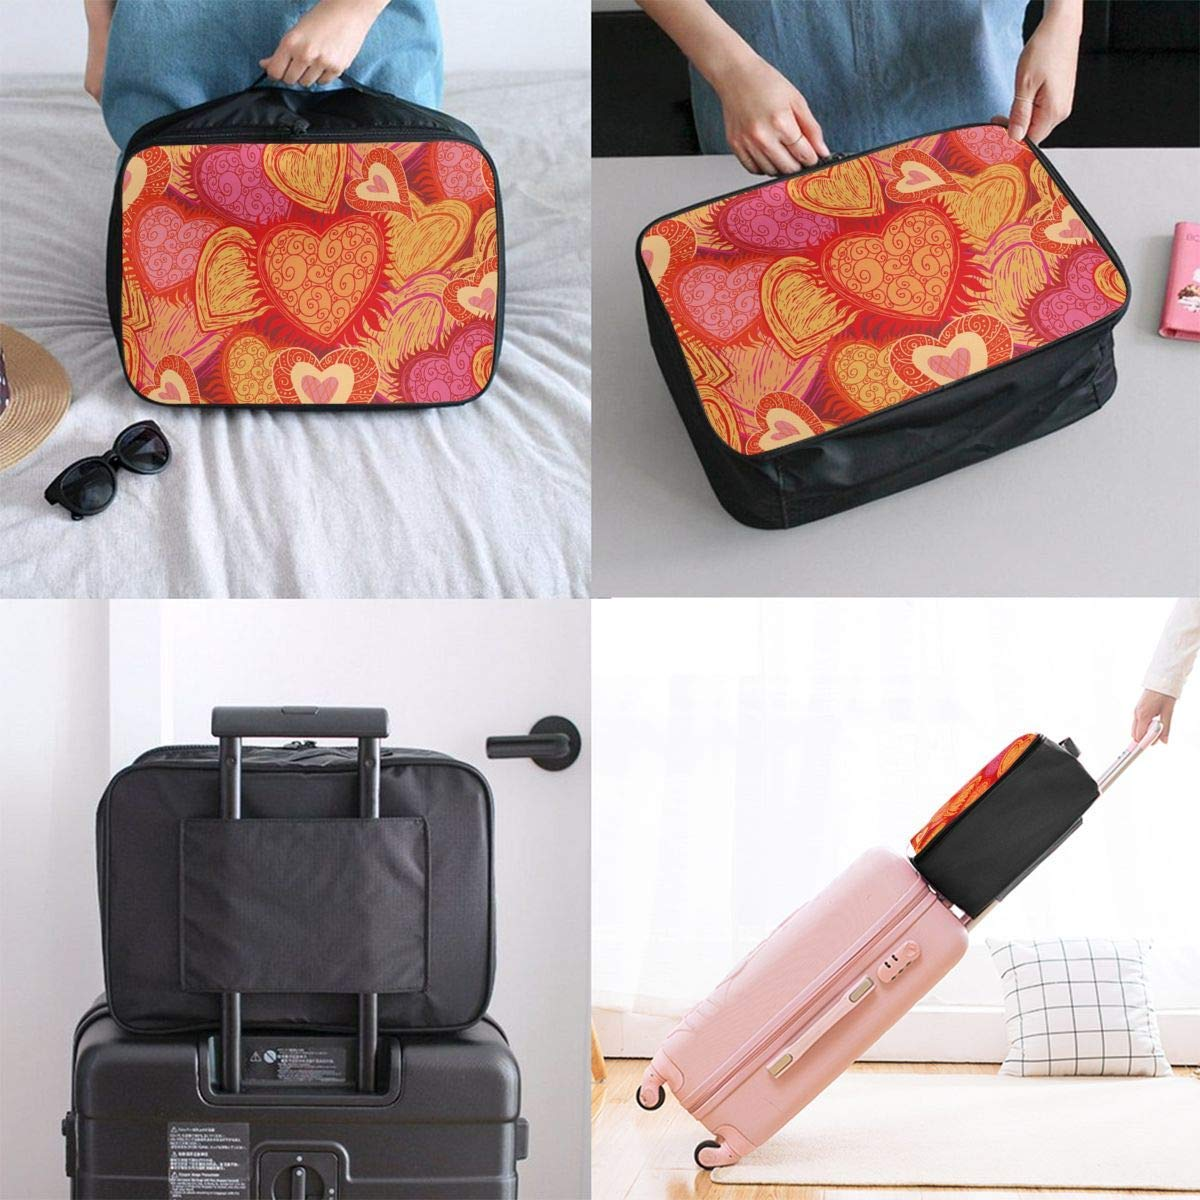 JTRVW Luggage Bags for Travel Foldable Travel Bag Travel Duffle Bag Lightweight Waterproof Travel Luggage Bag Love Hearts Flower